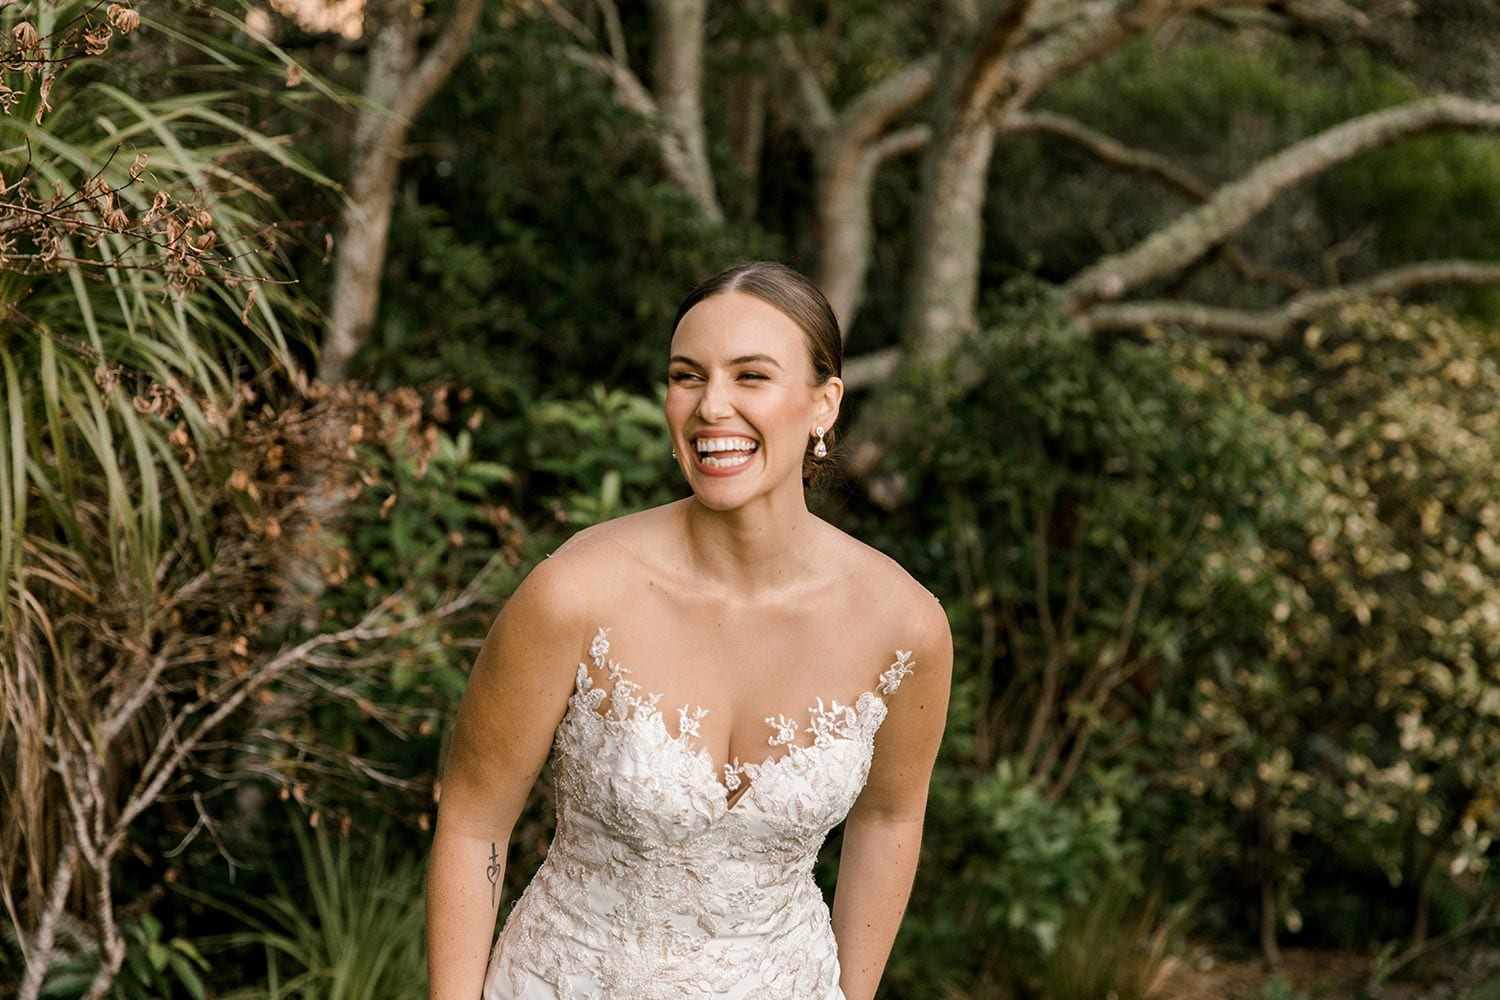 Samantha Wedding Dress from Vinka Design. This beautiful wedding dress has a nude sheer illusion strapless neckline made from fine Italian tulle. Low sheer back & structured bodice, & soft crepe train. Front detail of strapless illusion bodice. Photographed in Landscaped garden.